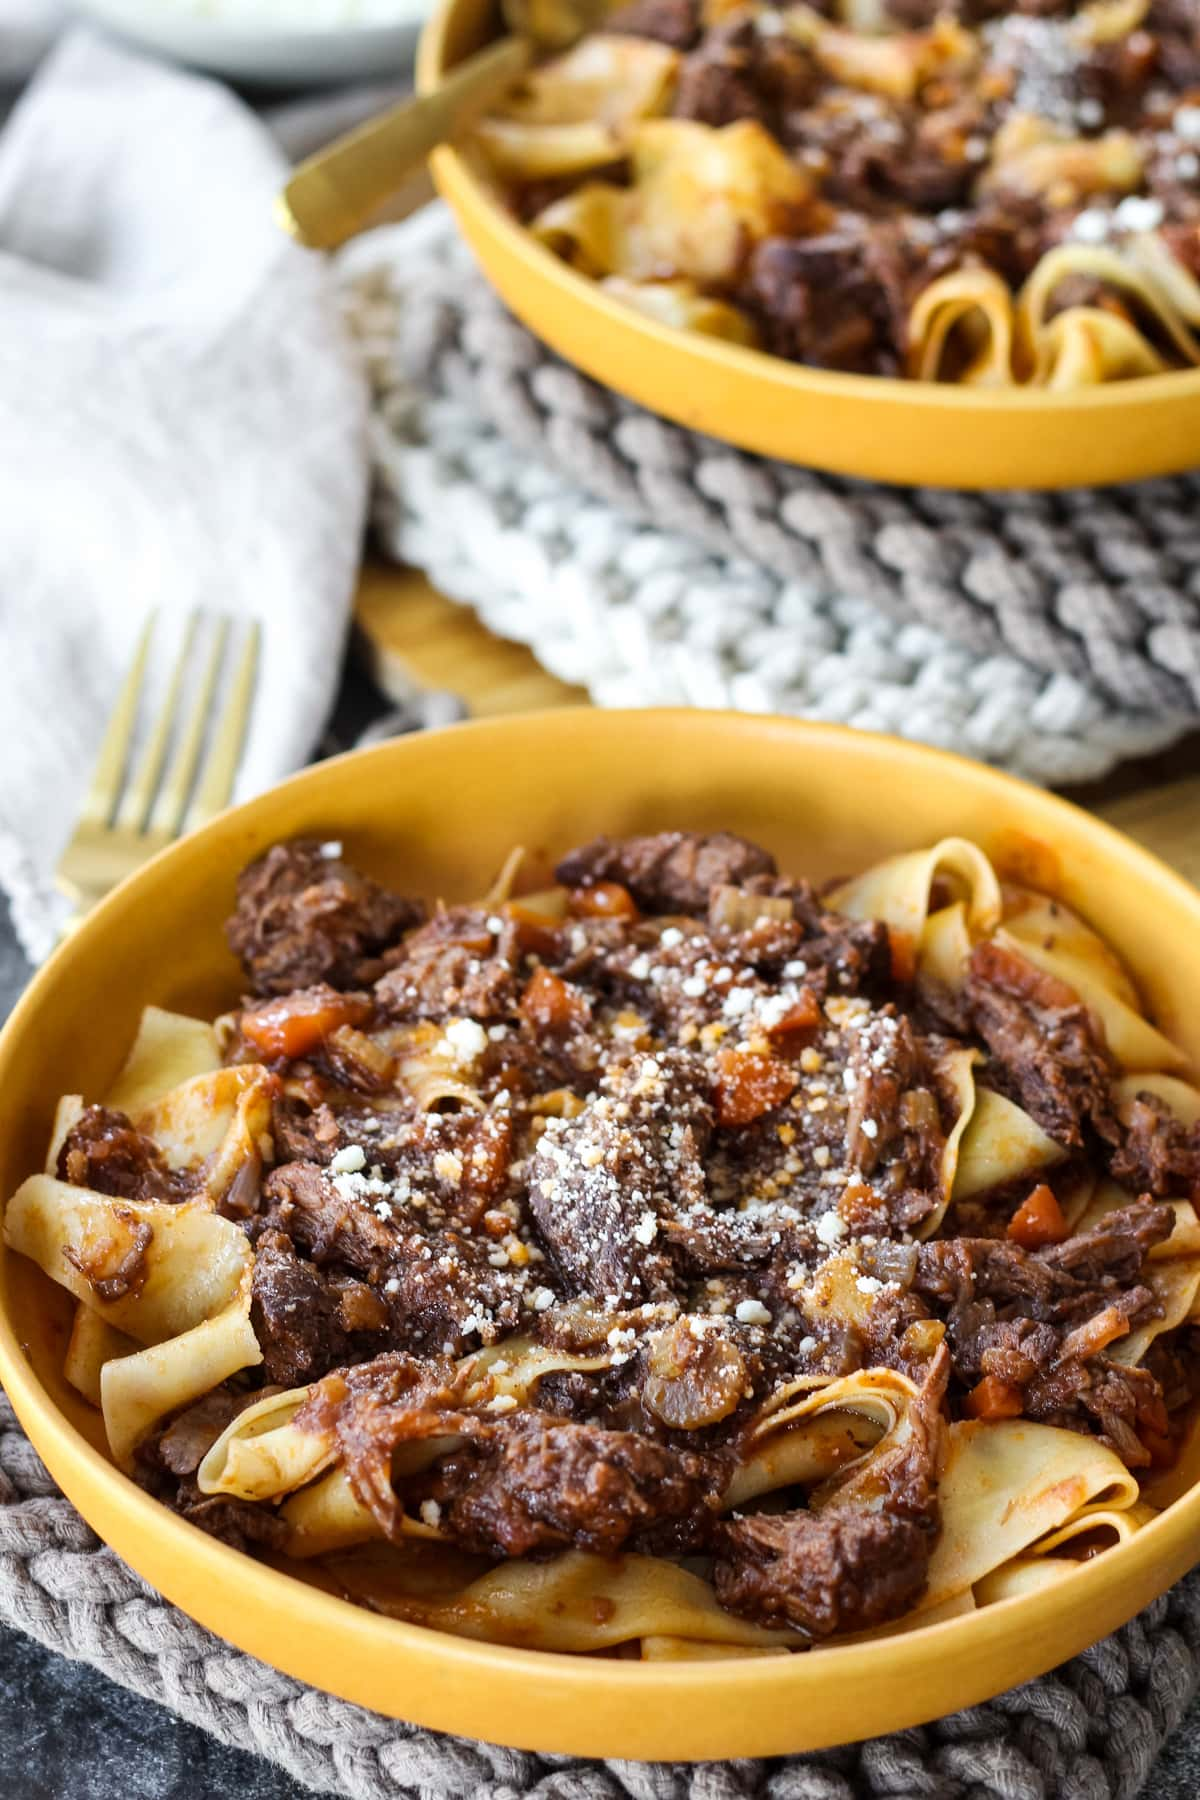 a close view of a yellow bowl filled with beef ragu over pappardelle pasta